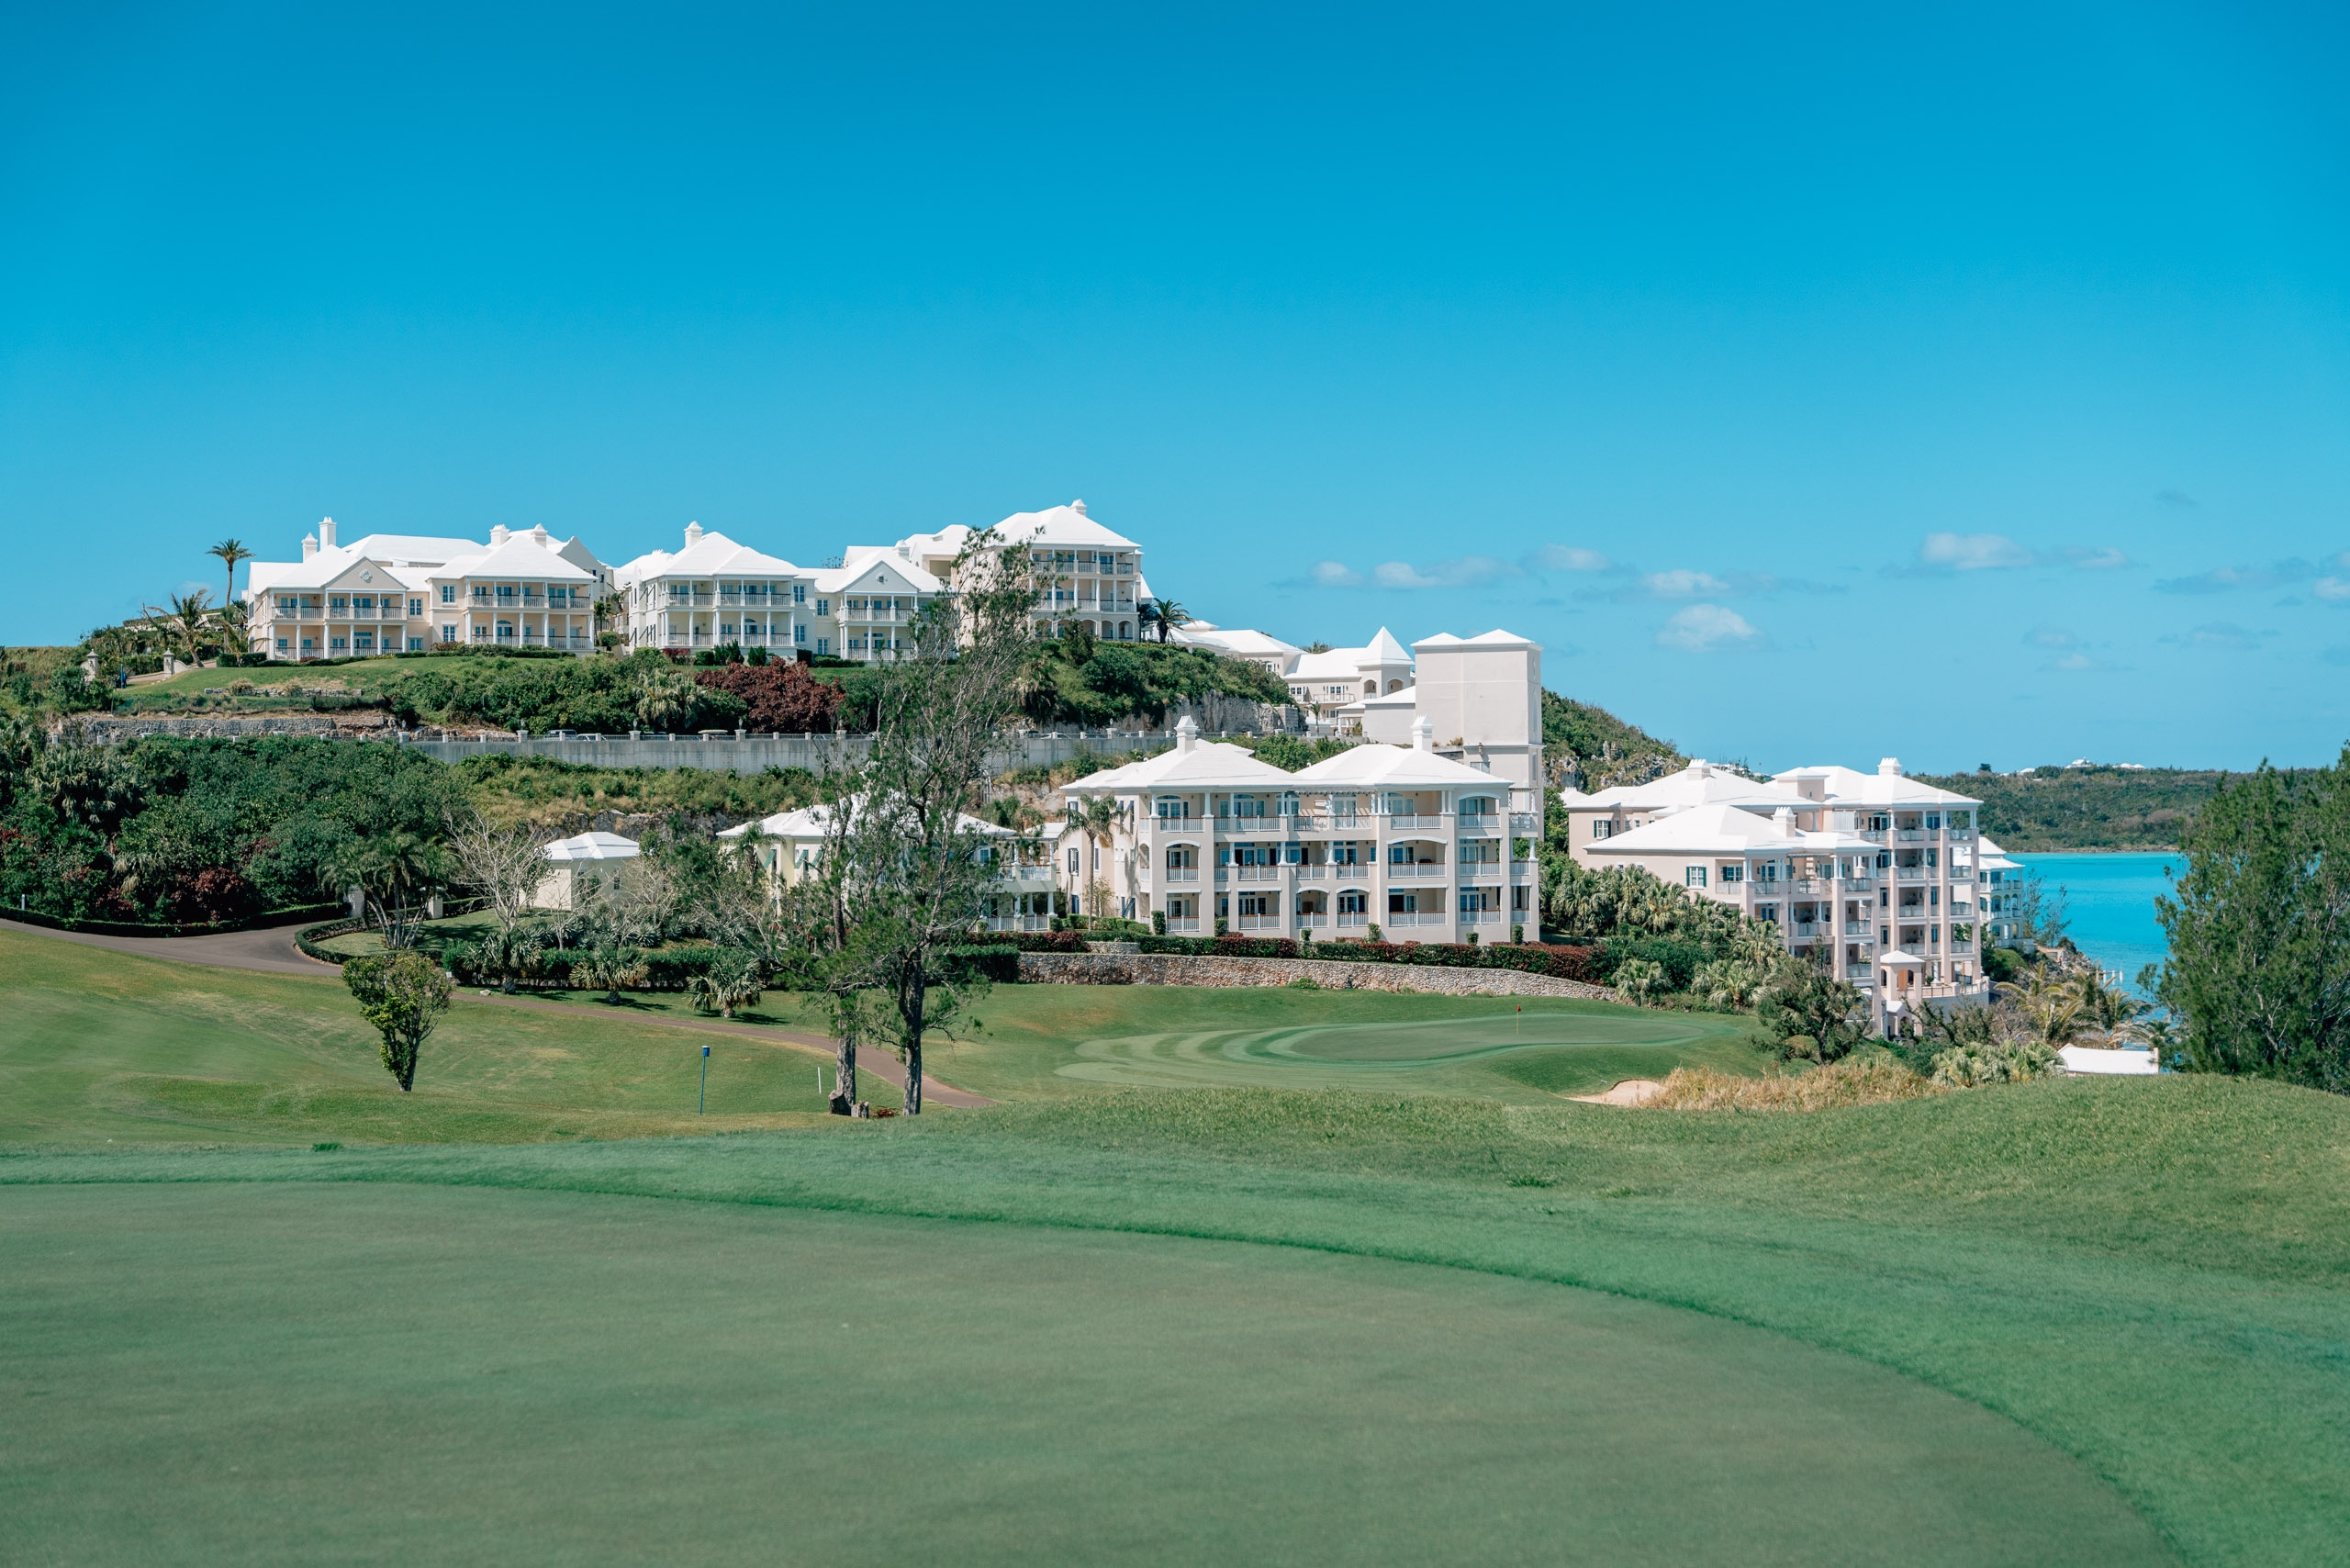 The Tucker's Point Country Club at the Rosewood Bermuda 2